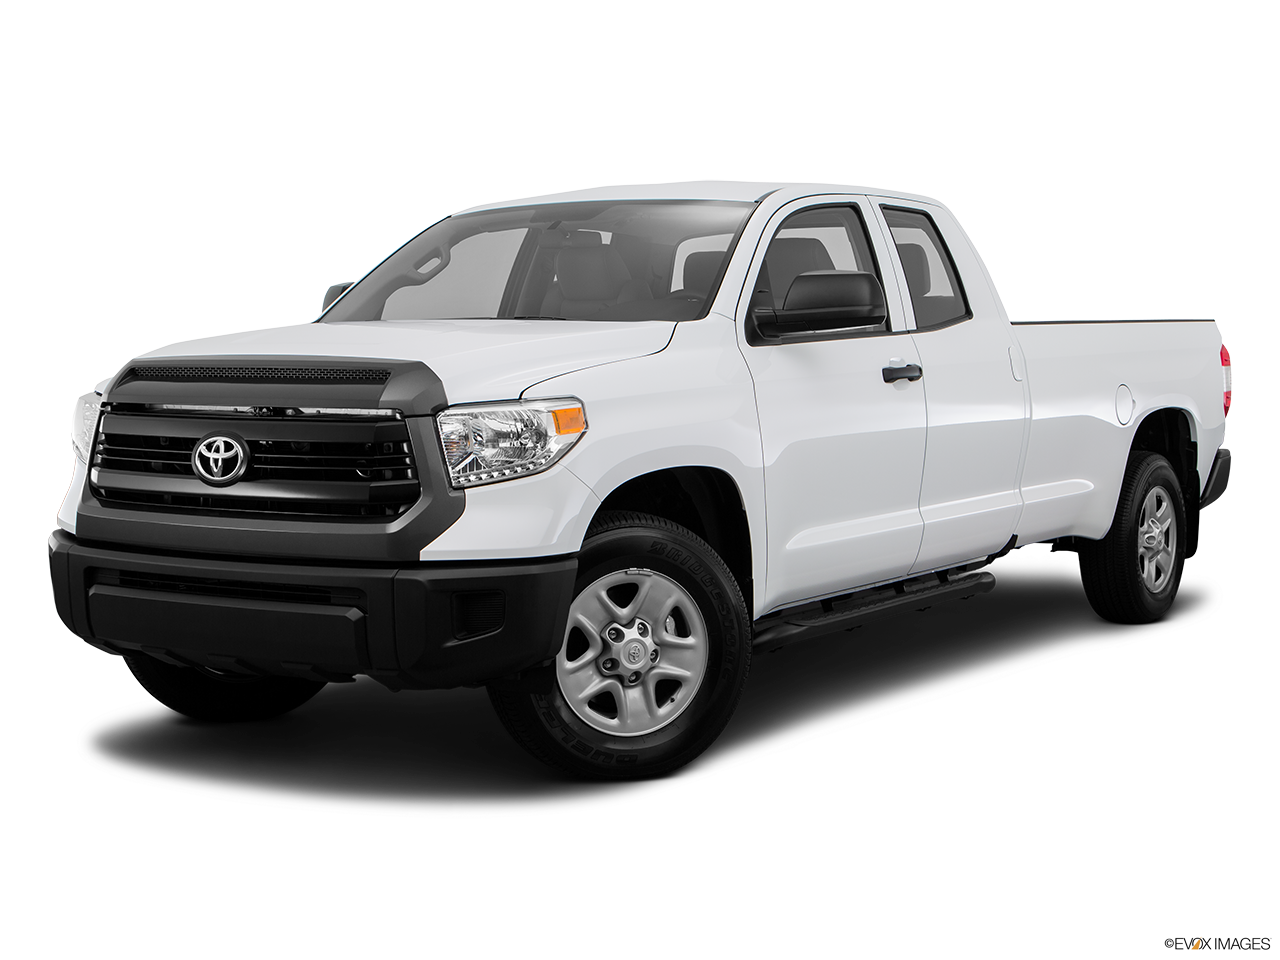 Test Drive A 2016 Toyota Tundra at Moss Bros Toyota of Moreno Valley in Moreno Valley